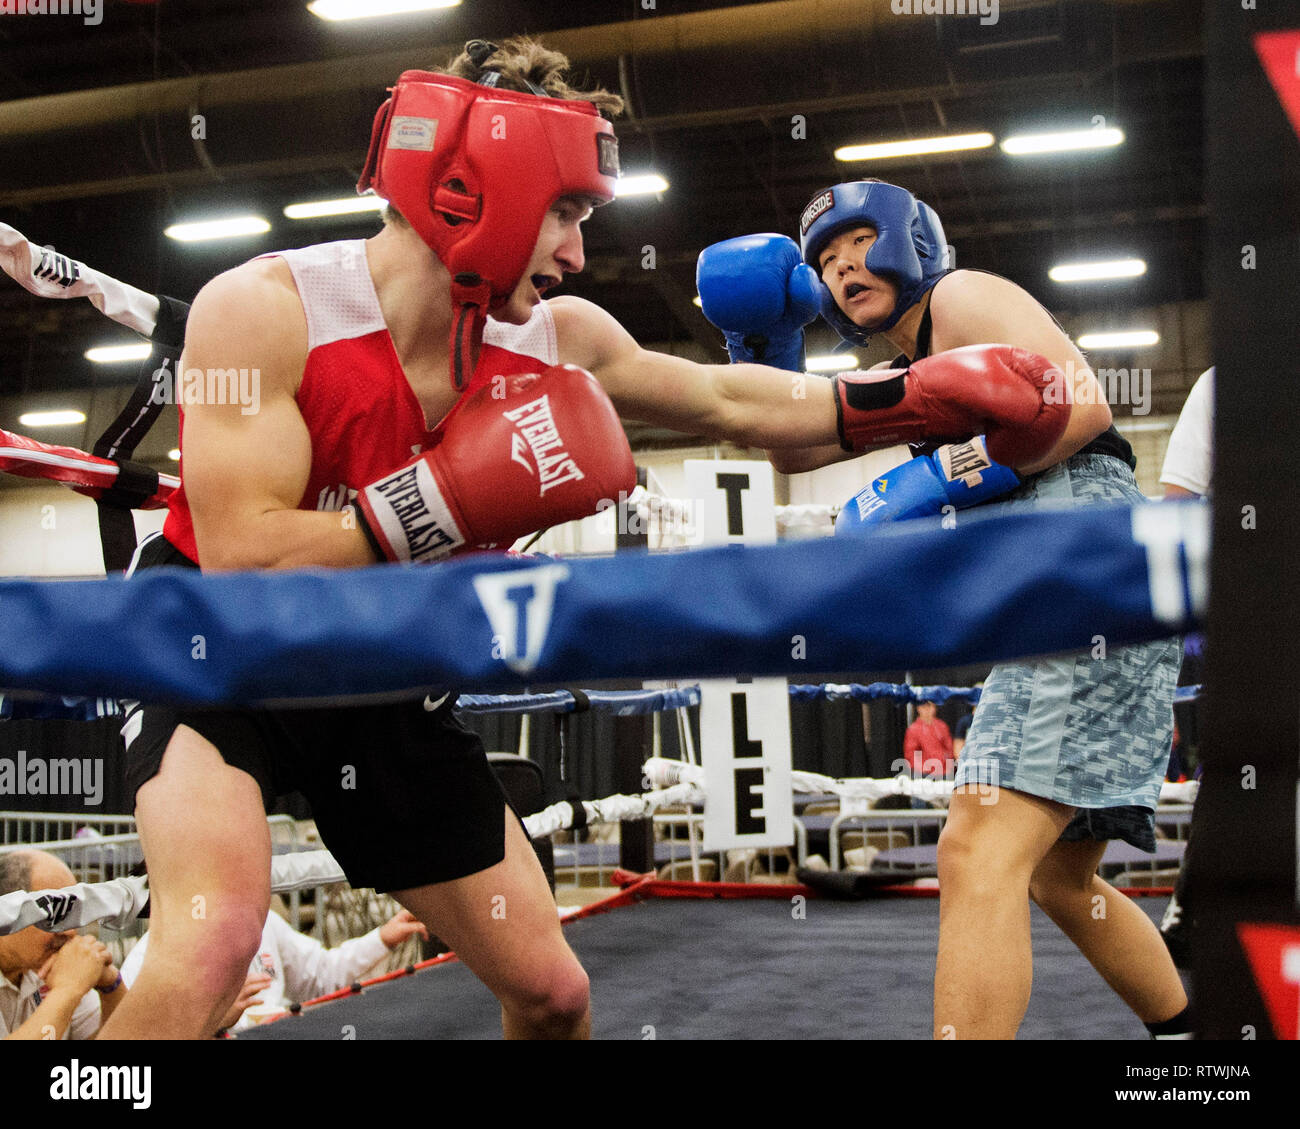 March 2, 2019: Daniel Choi of Illinois fights in the corner with Cade Allox of Wisconsin in the Amateur Boxing competition at the Arnold Sports Festival in Columbus, Ohio, USA. Brent Clark/Alamy Live News Stock Photo